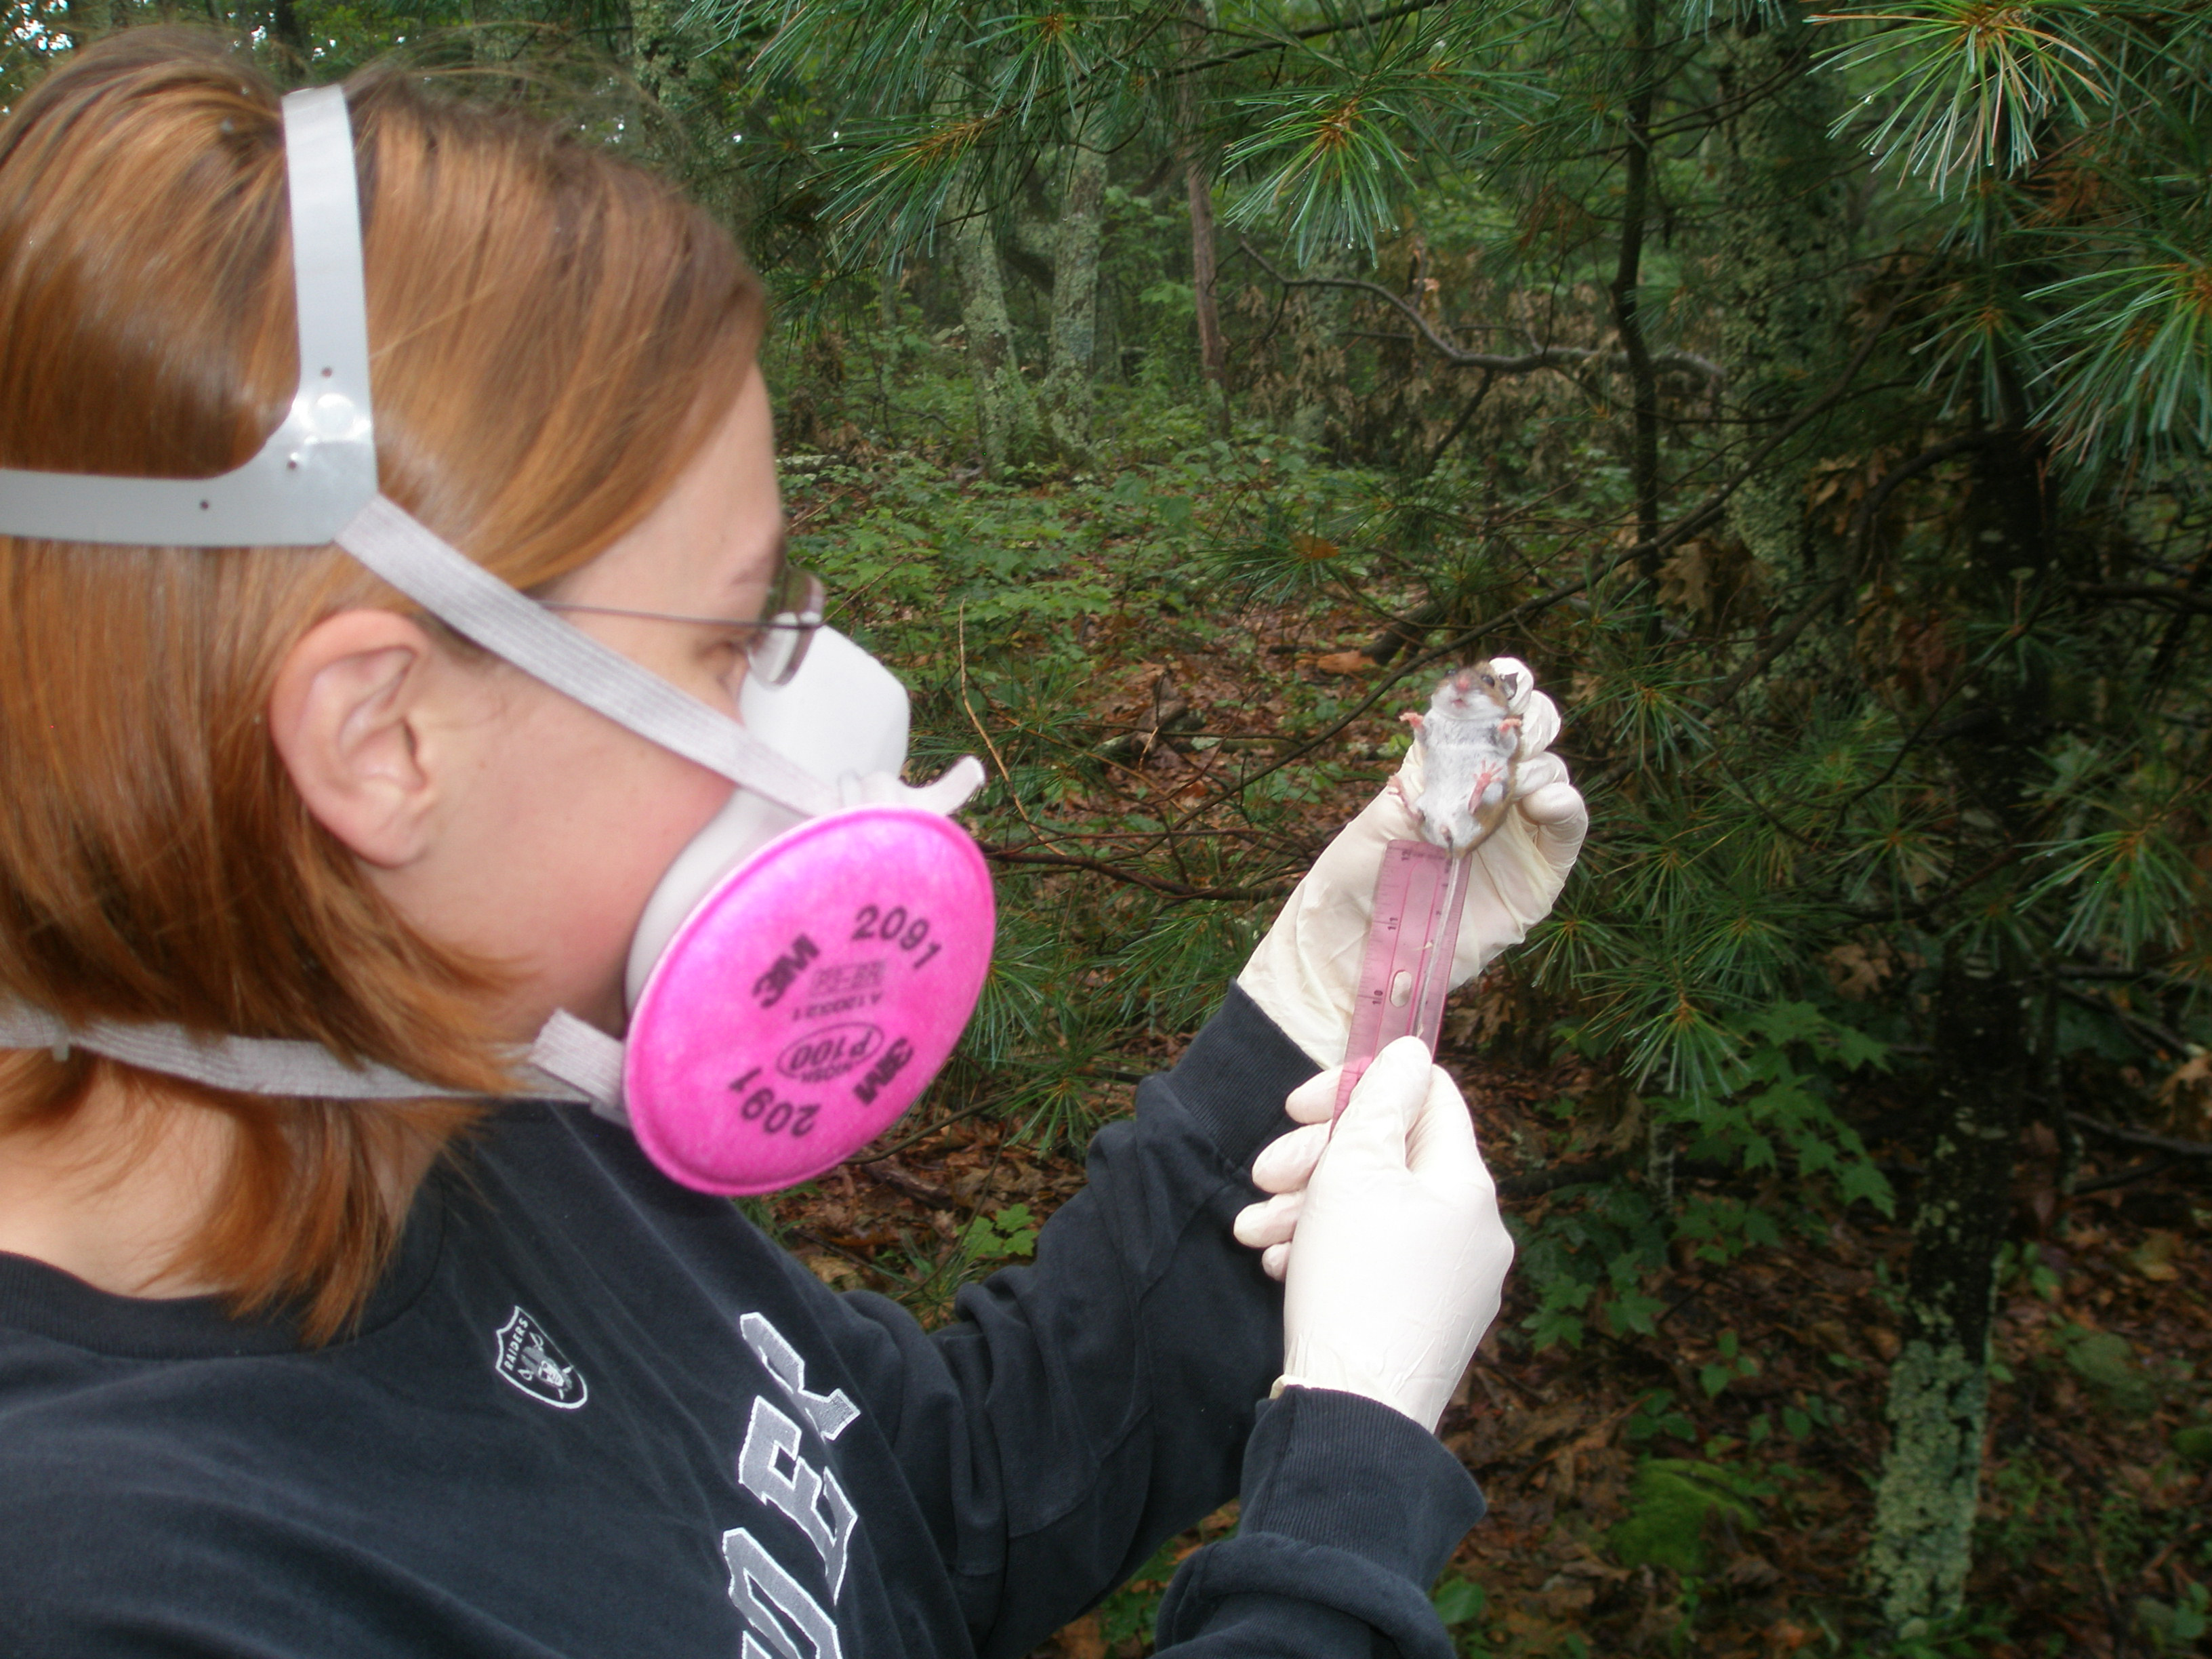 A woman wearing protective respiratory gear holds a mouse and measures the length of its tail in a wooded setting.